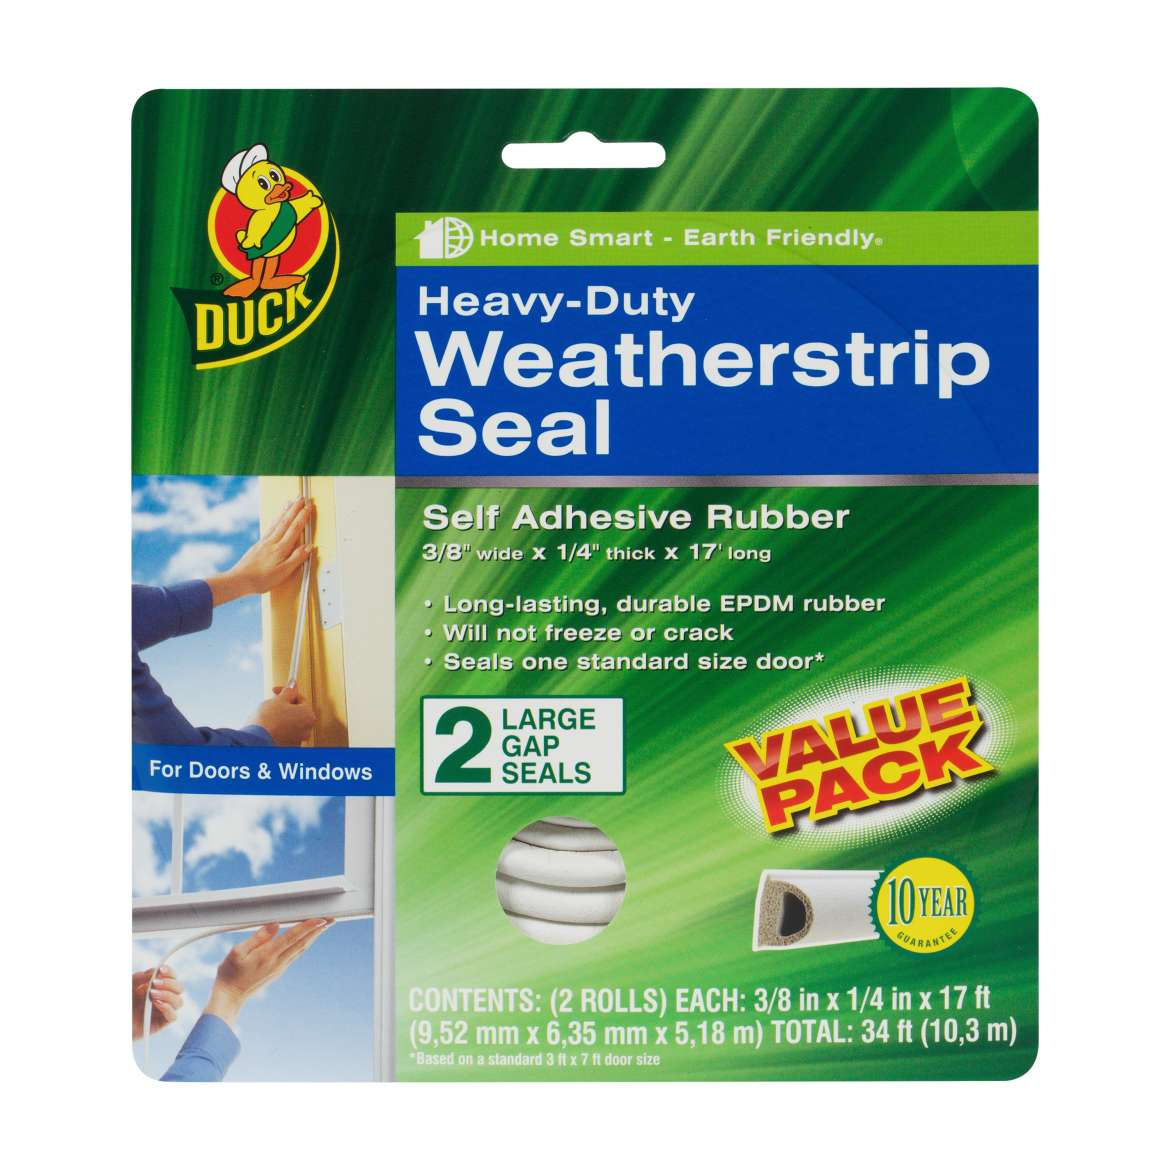 Duck Brand Heavy-Duty Weatherstrip Seal for Large Gaps, 2pk